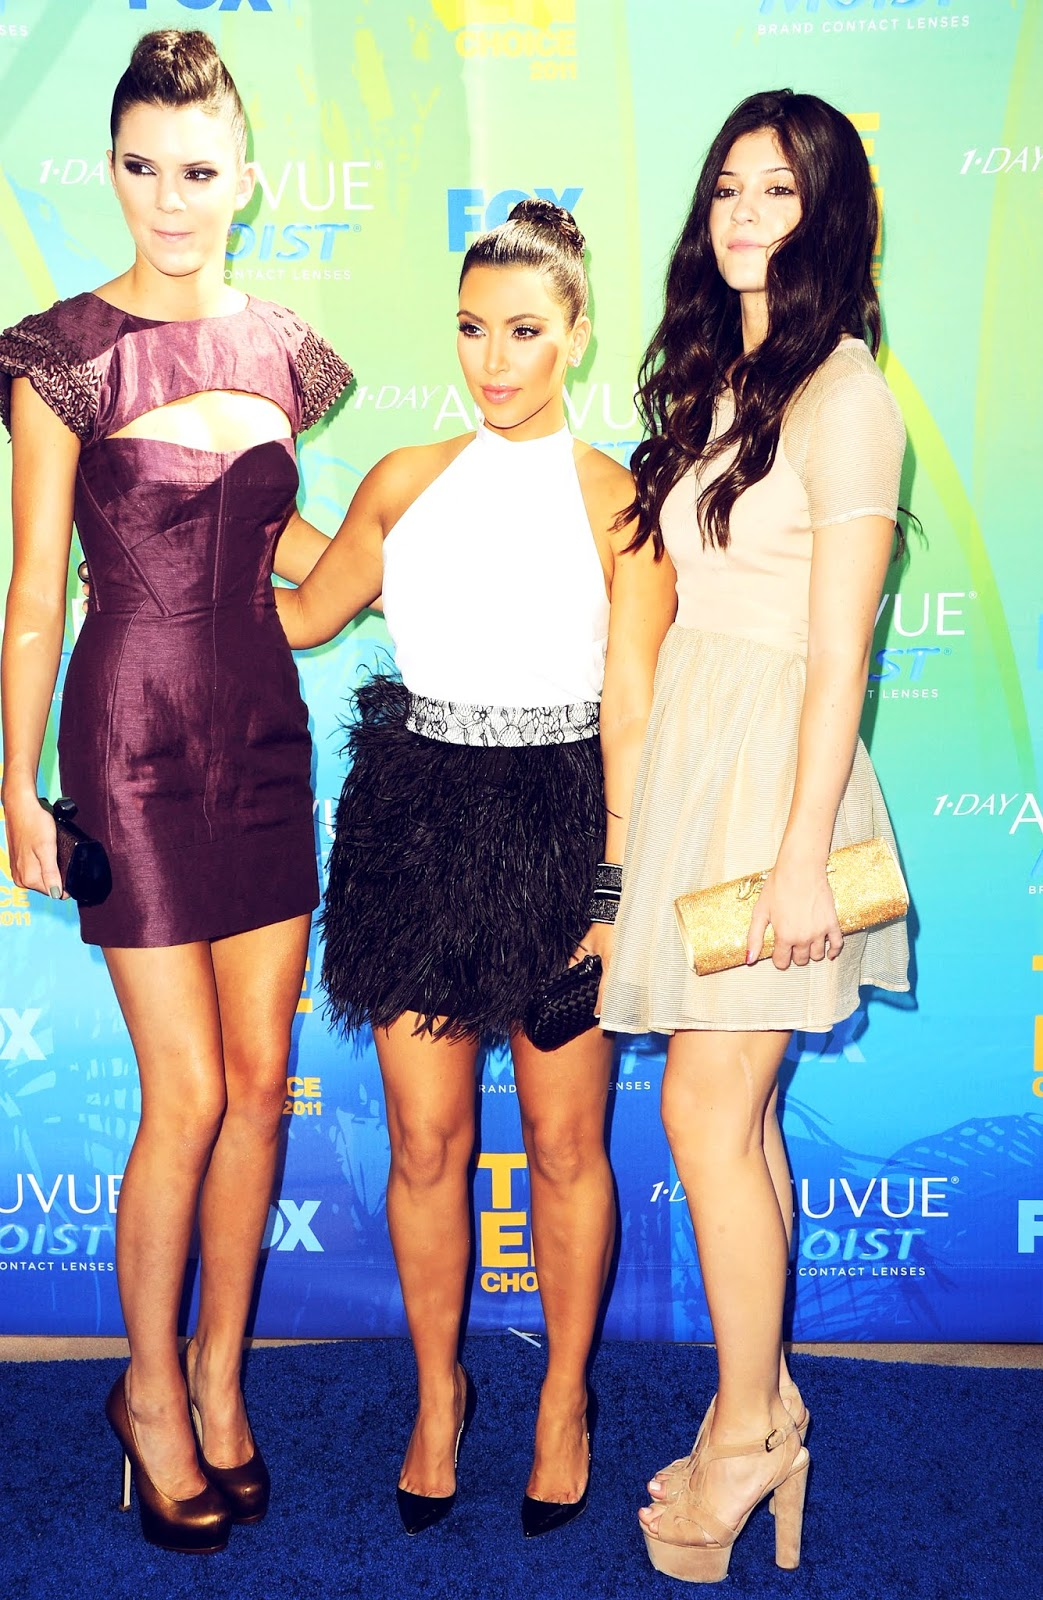 20 - Teen Choice Awards in August 11, 2011